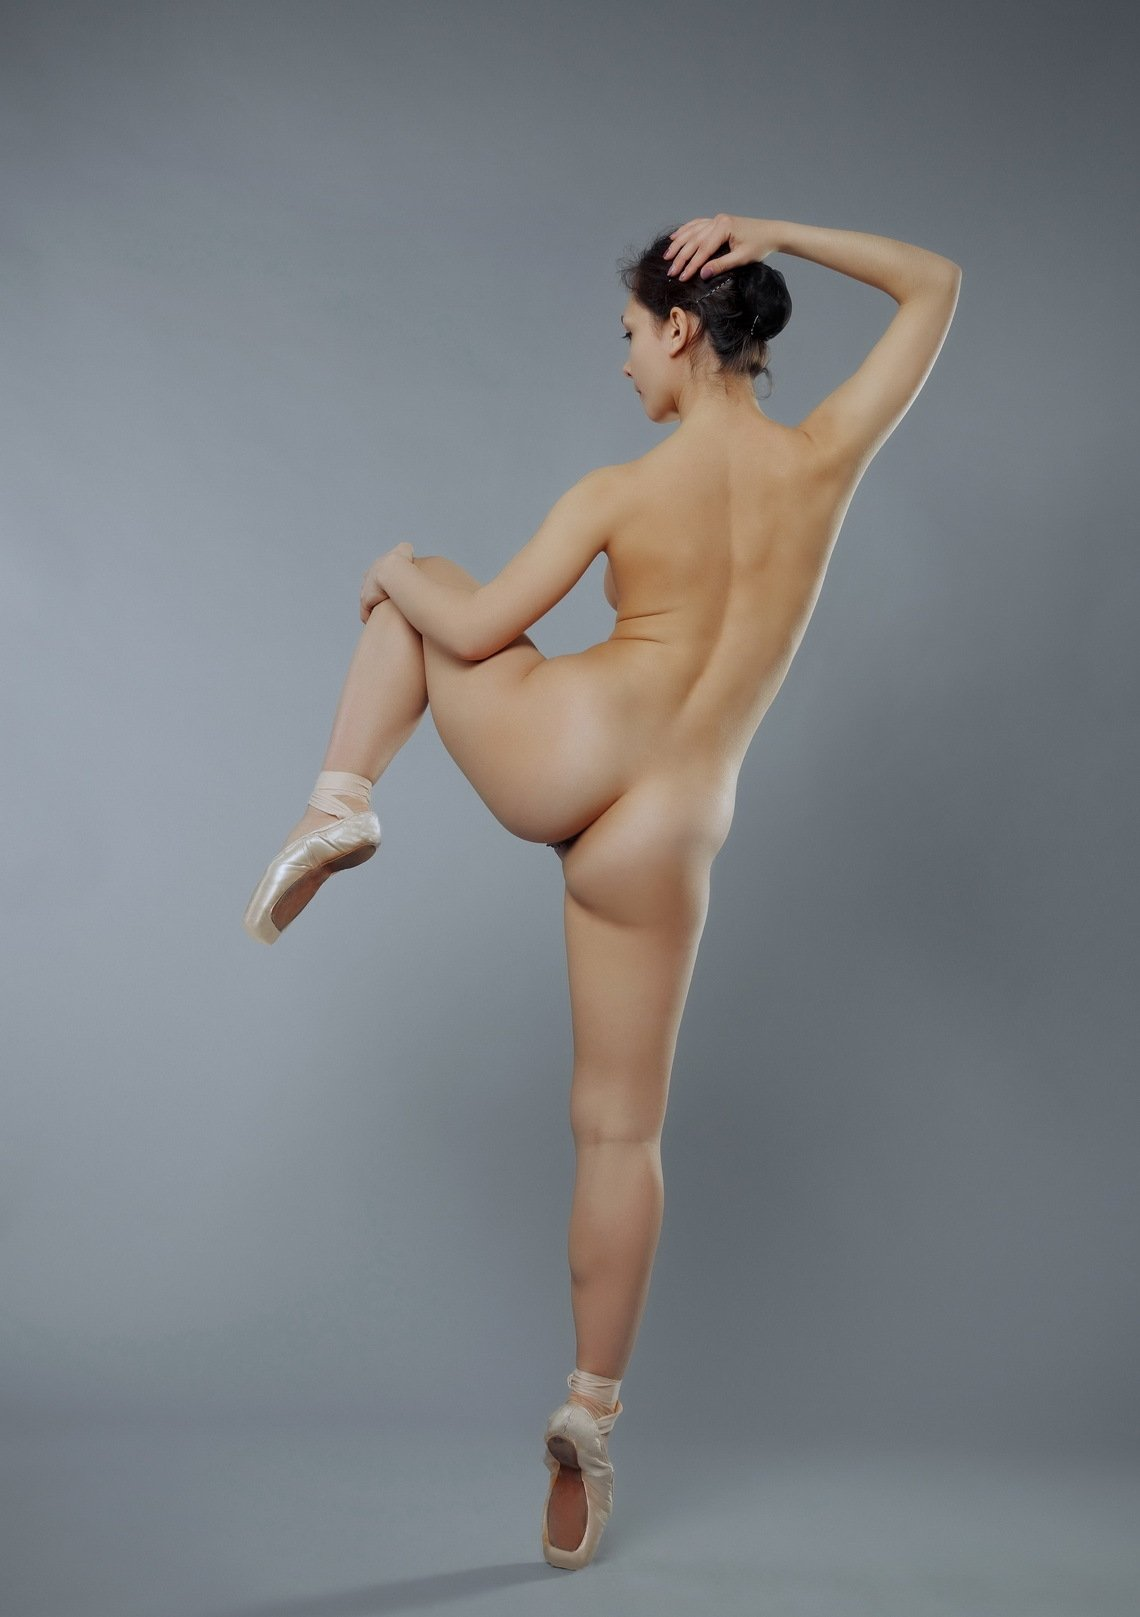 Nude ballerina stock photo